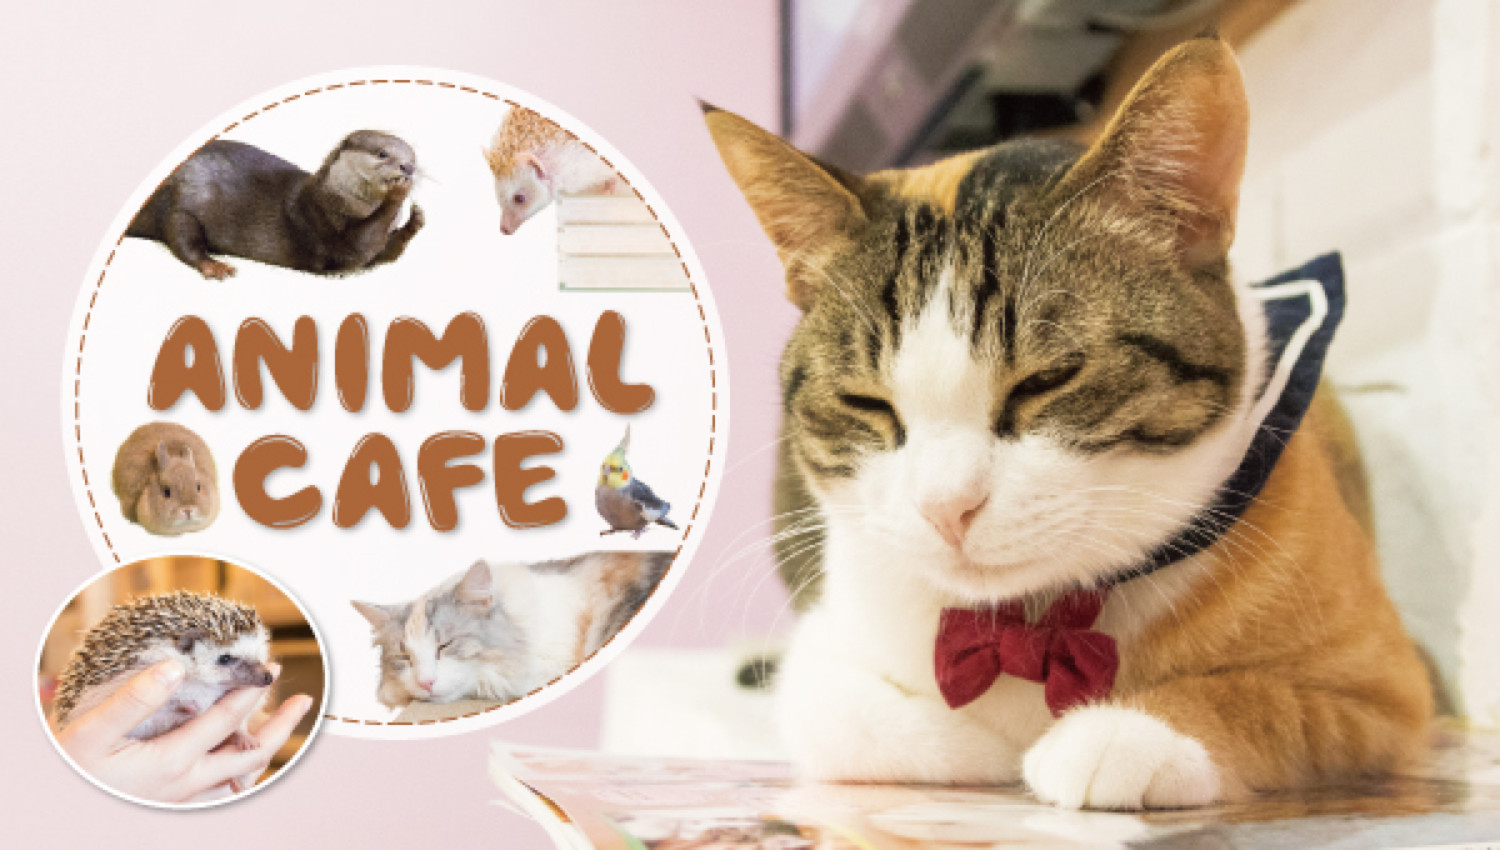 animalcafe222